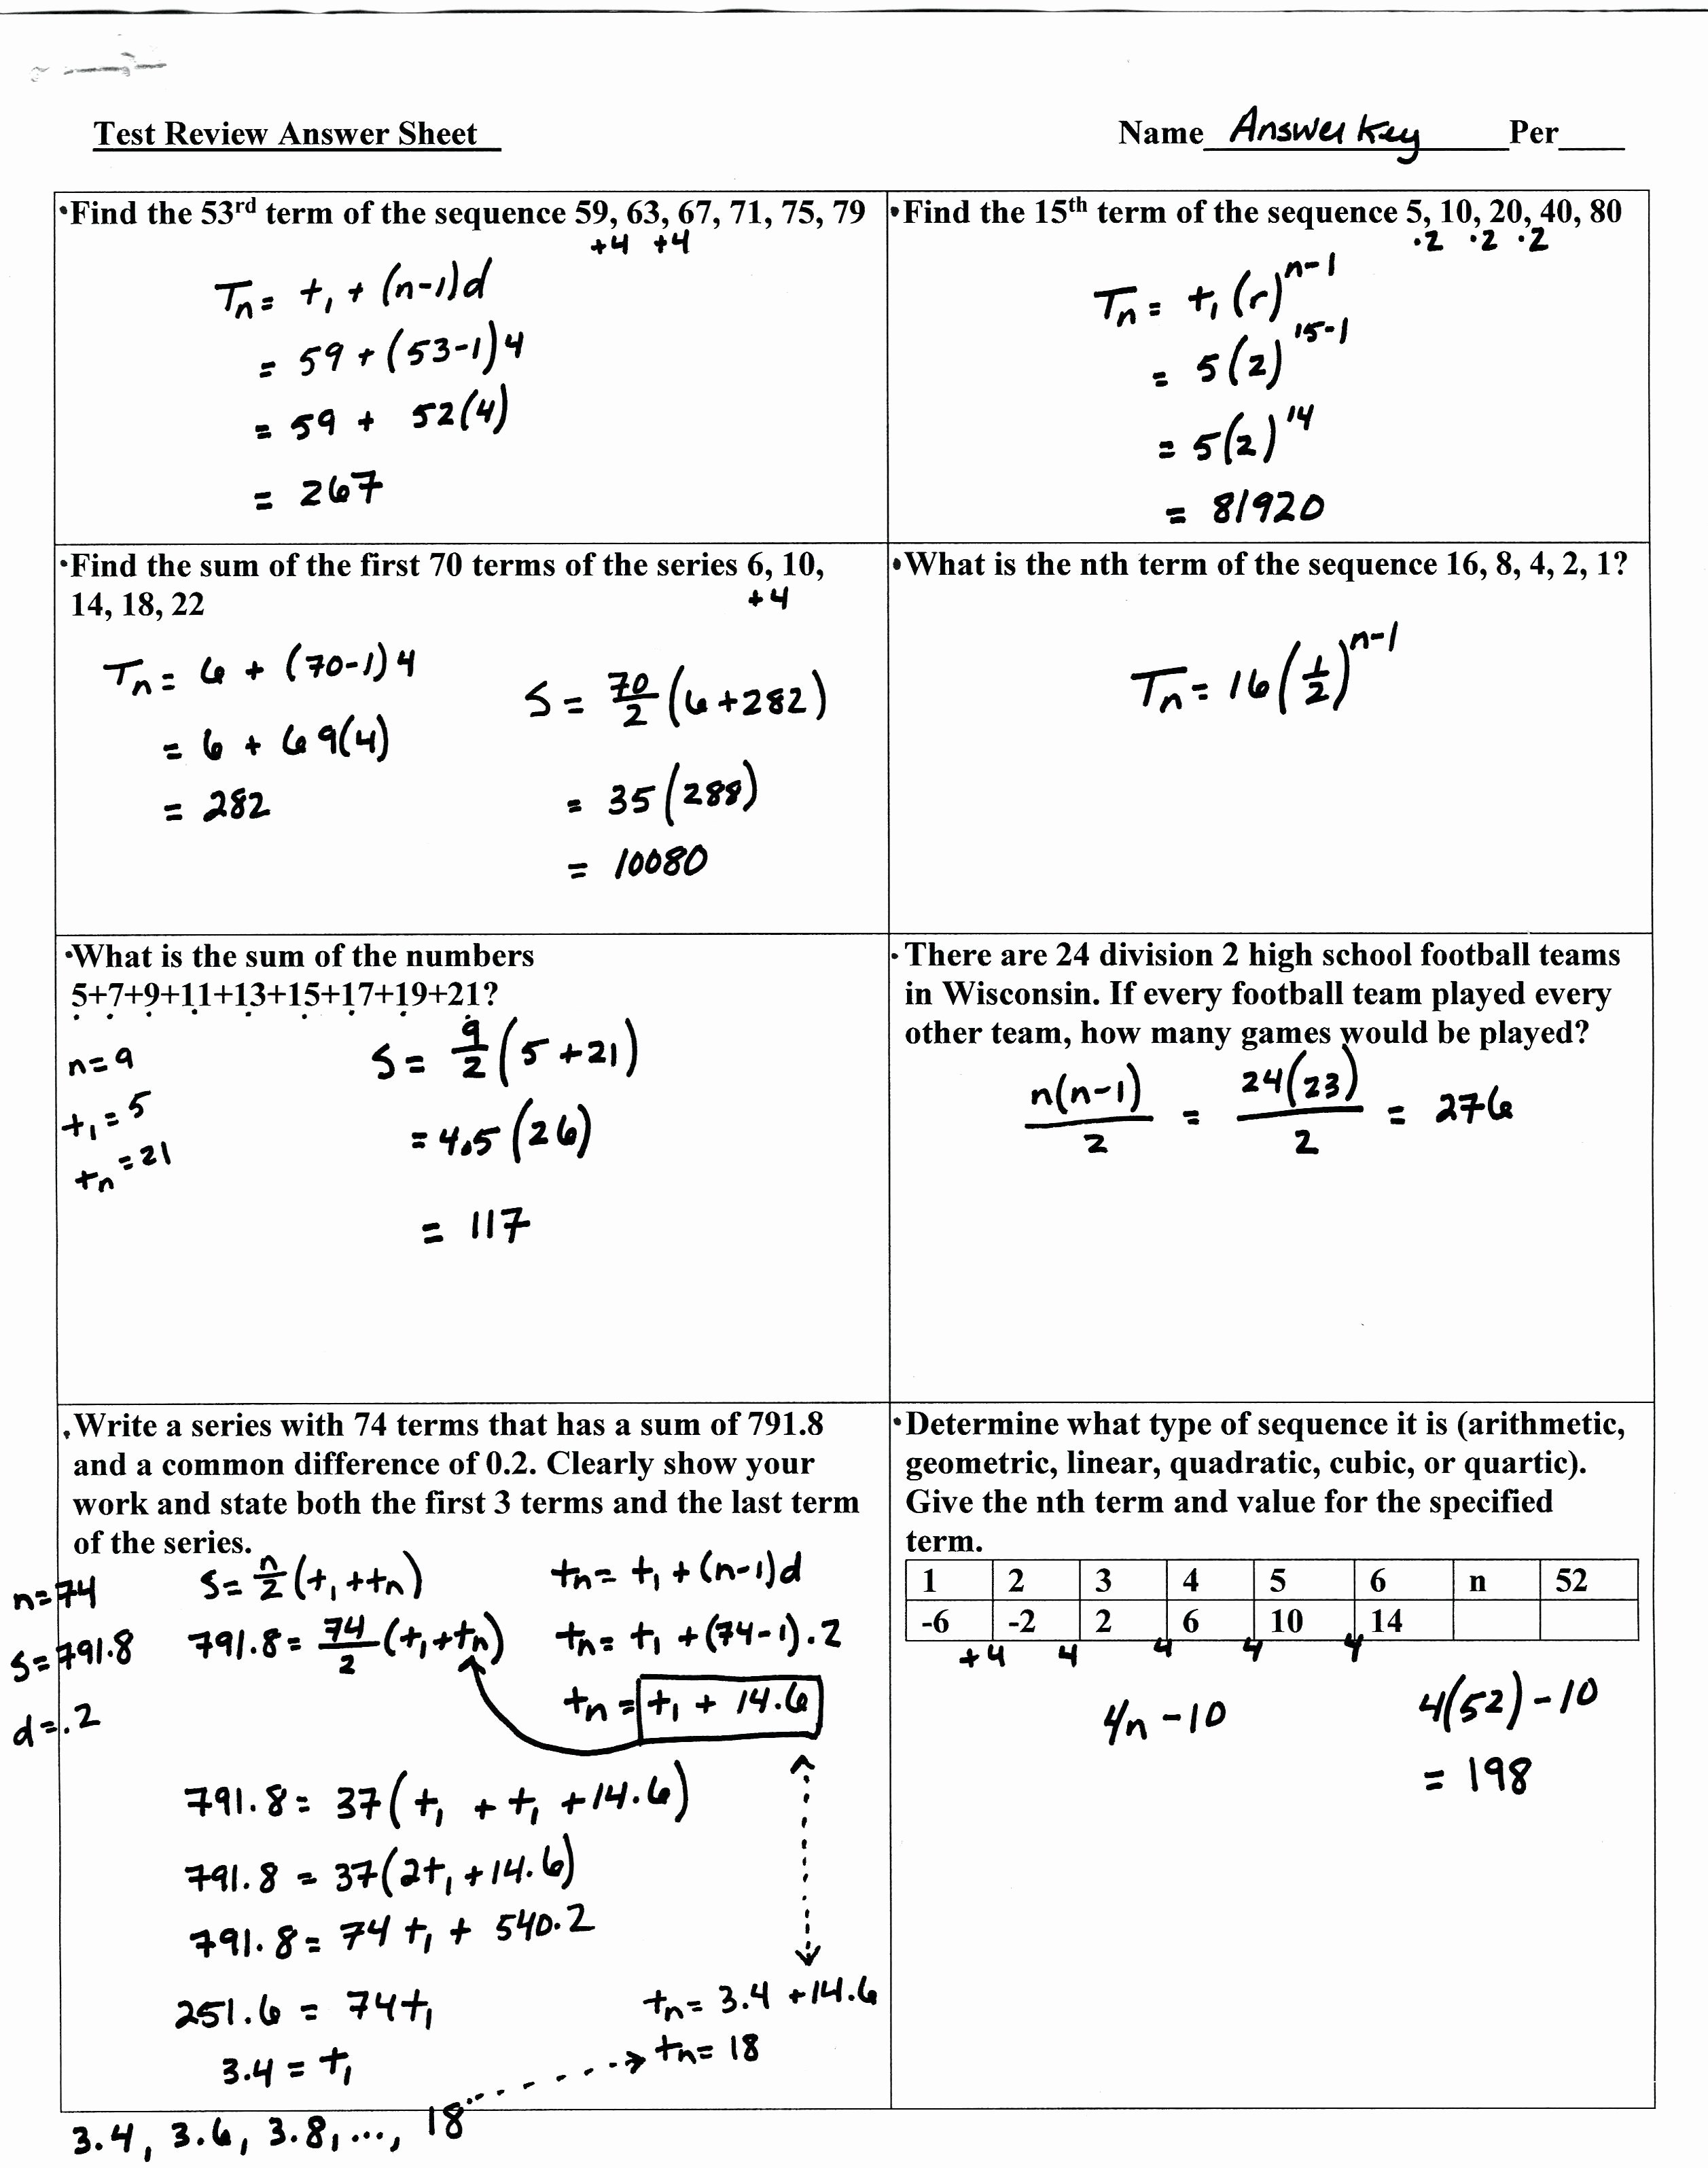 Geometric Sequence Practice Worksheet Awesome Arithmetic Sequences the Nth Term Worksheet Edplace